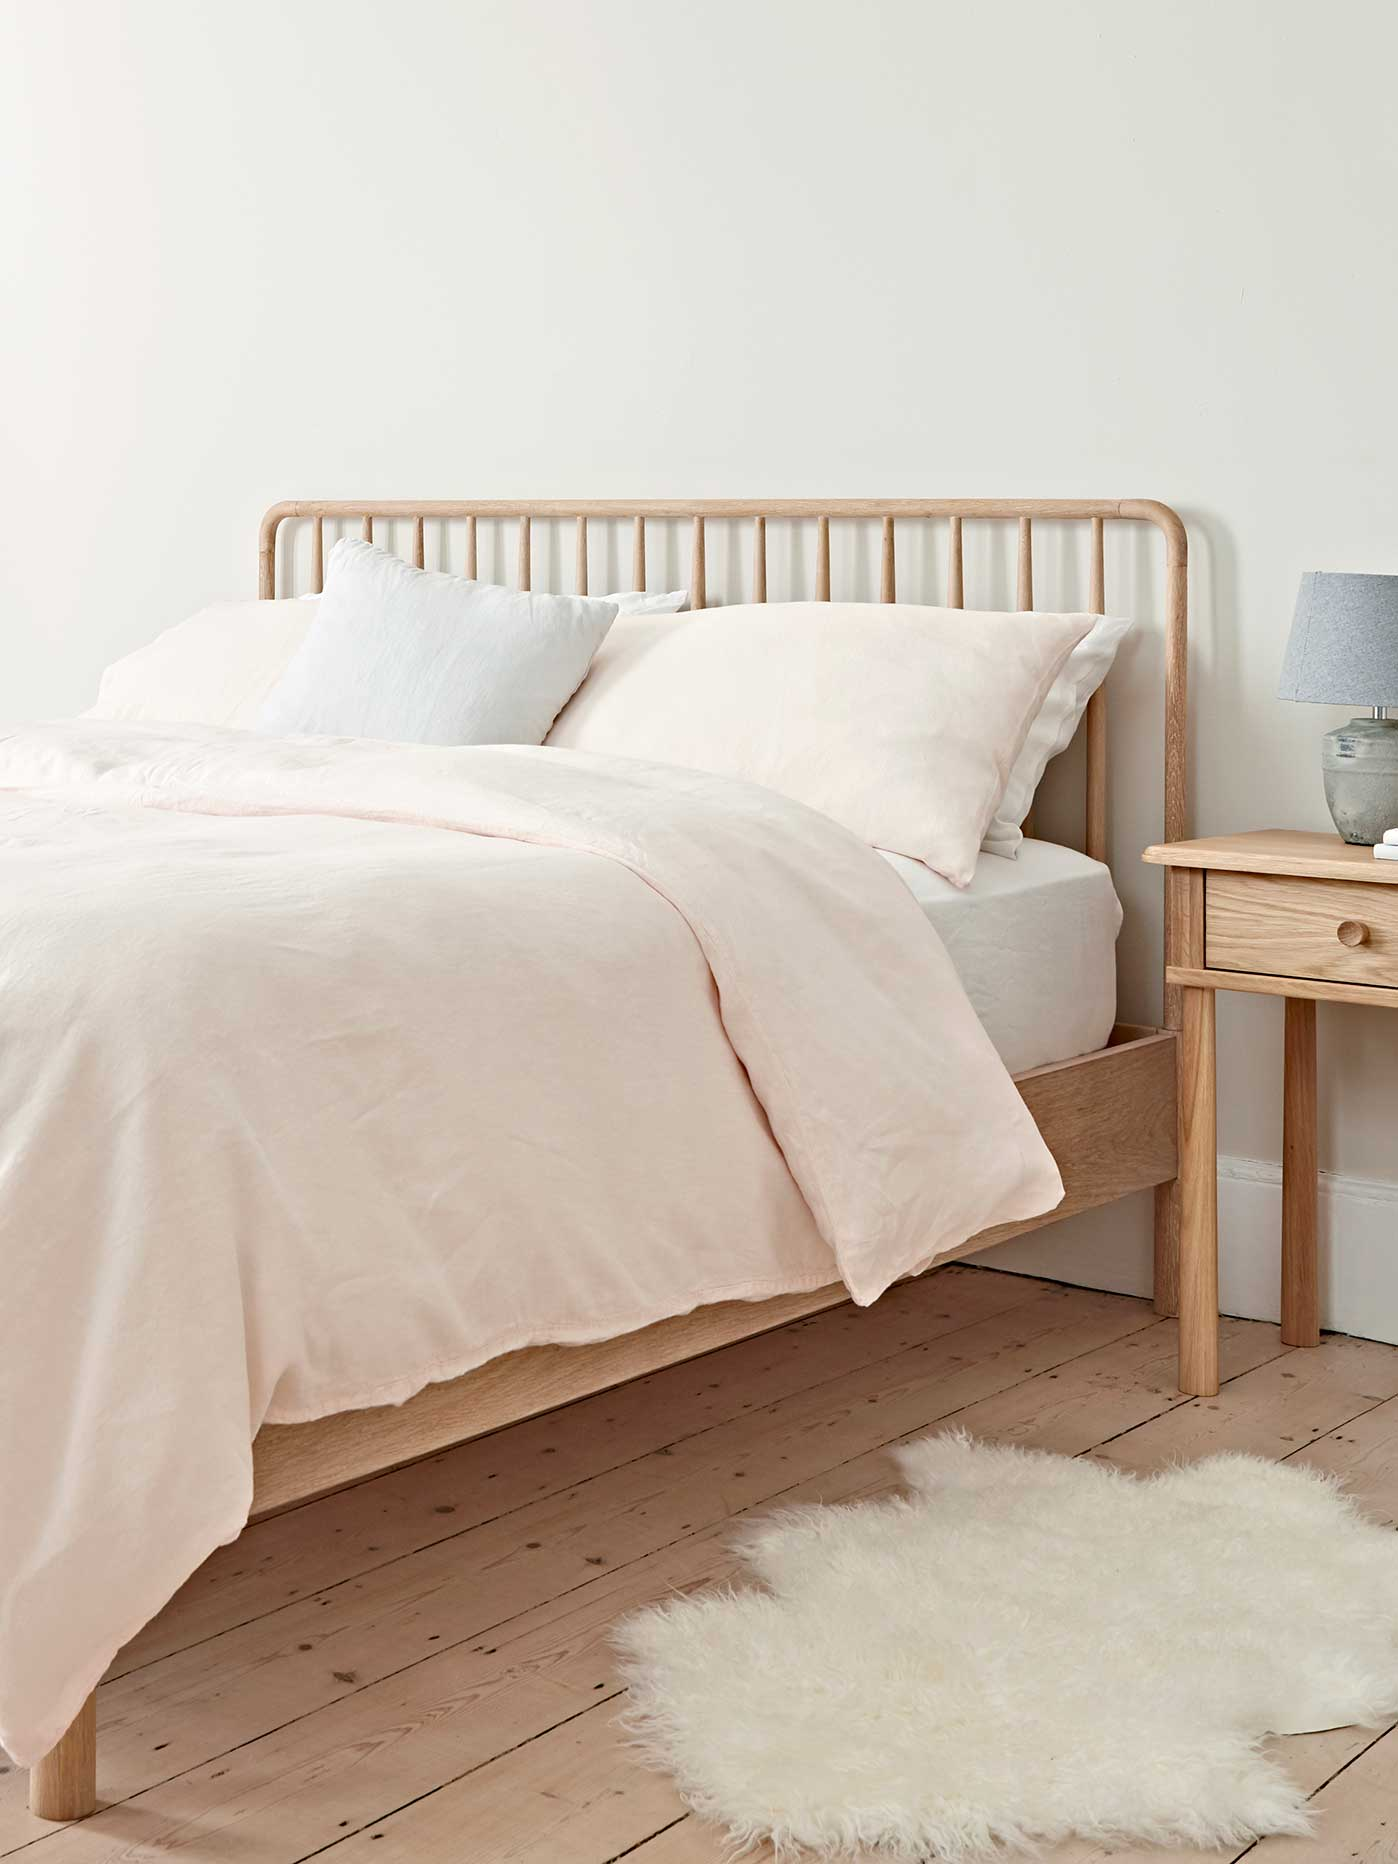 Design Storey launch: Oak bed with neutral bedding and sheepskin rug